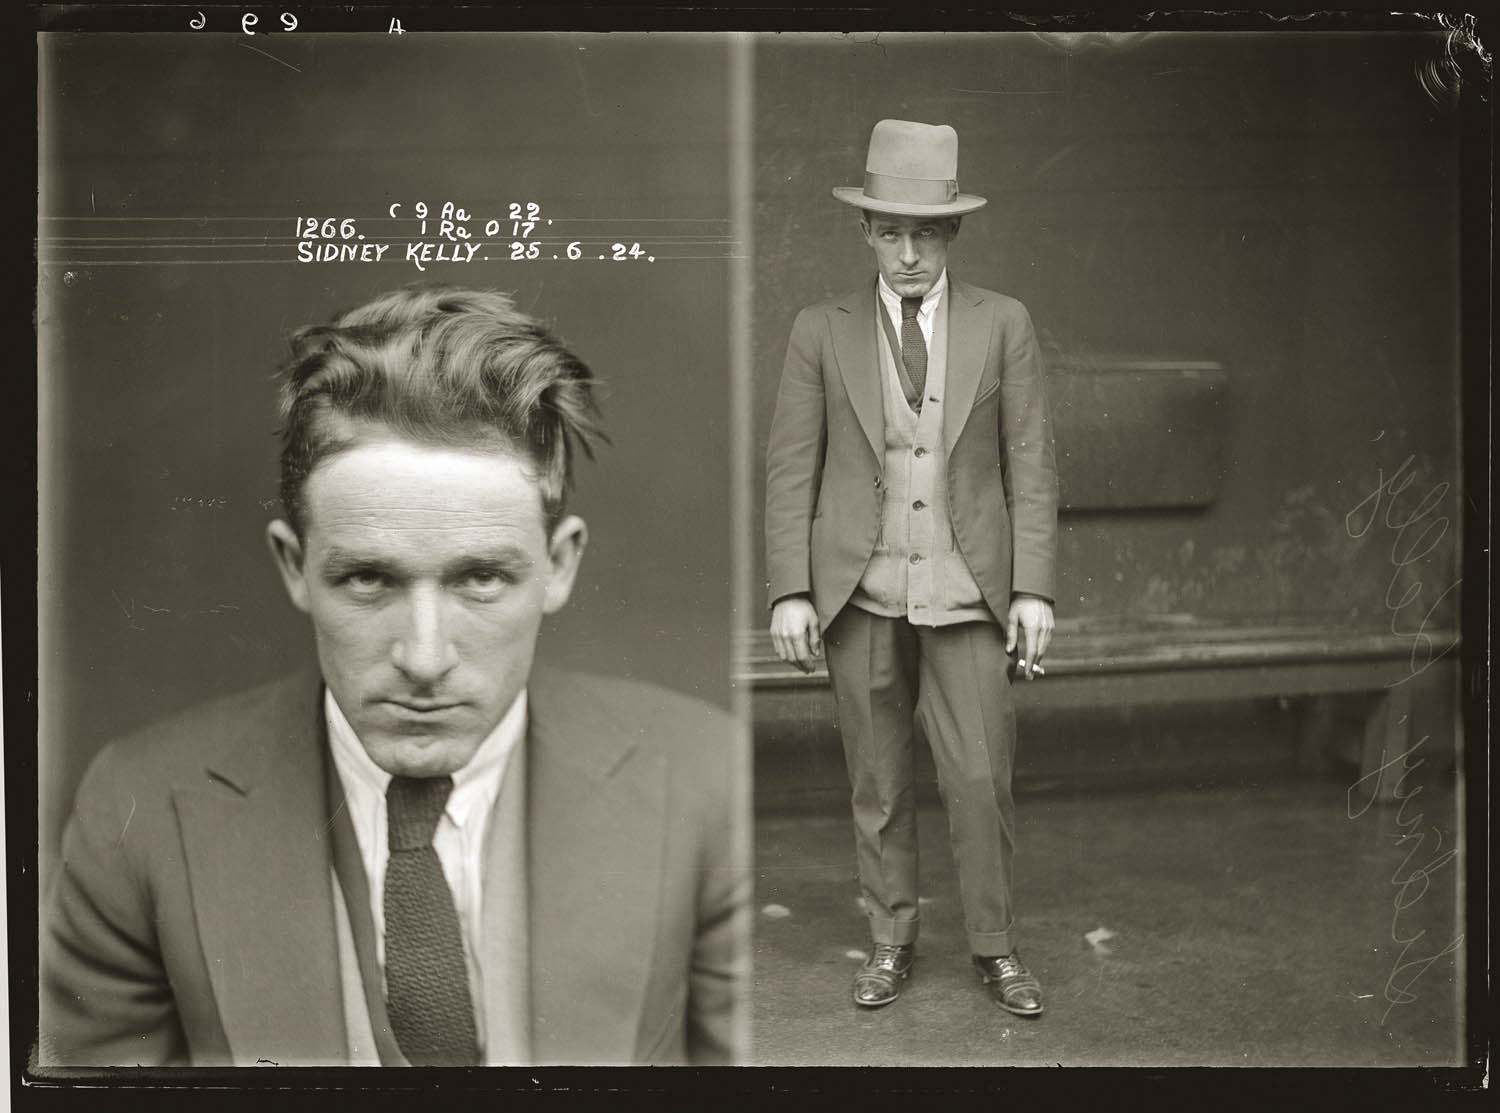 Mug shot of Sidney Kelly, 25 June 1924, Central Police Station, Sydney.